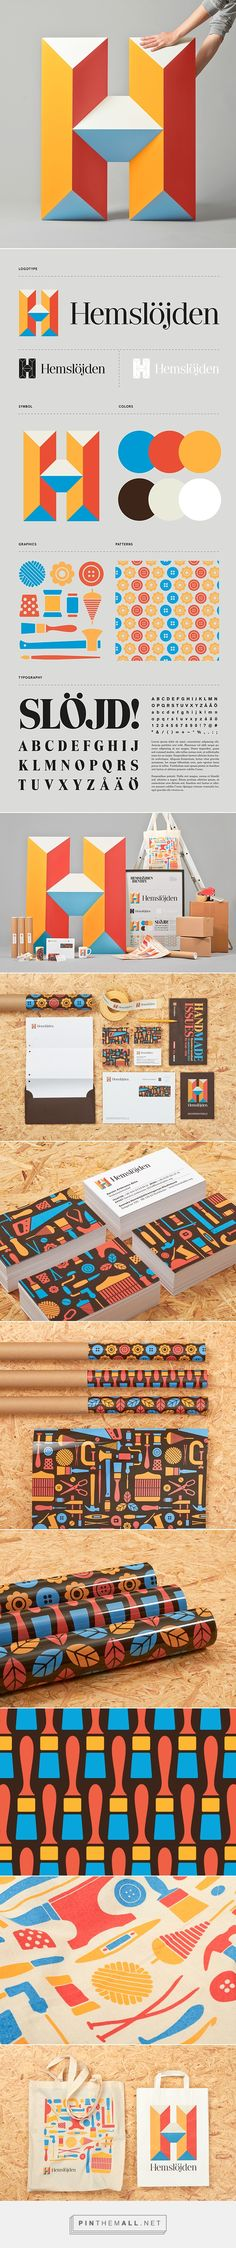 Swedish Handicraft Societies on Behance by Snask curated by Packaging Diva PD. Patterned #packaging #branding #logos created via https://www.behance.net/gallery/19947579/Swedish-Handicraft-Societies